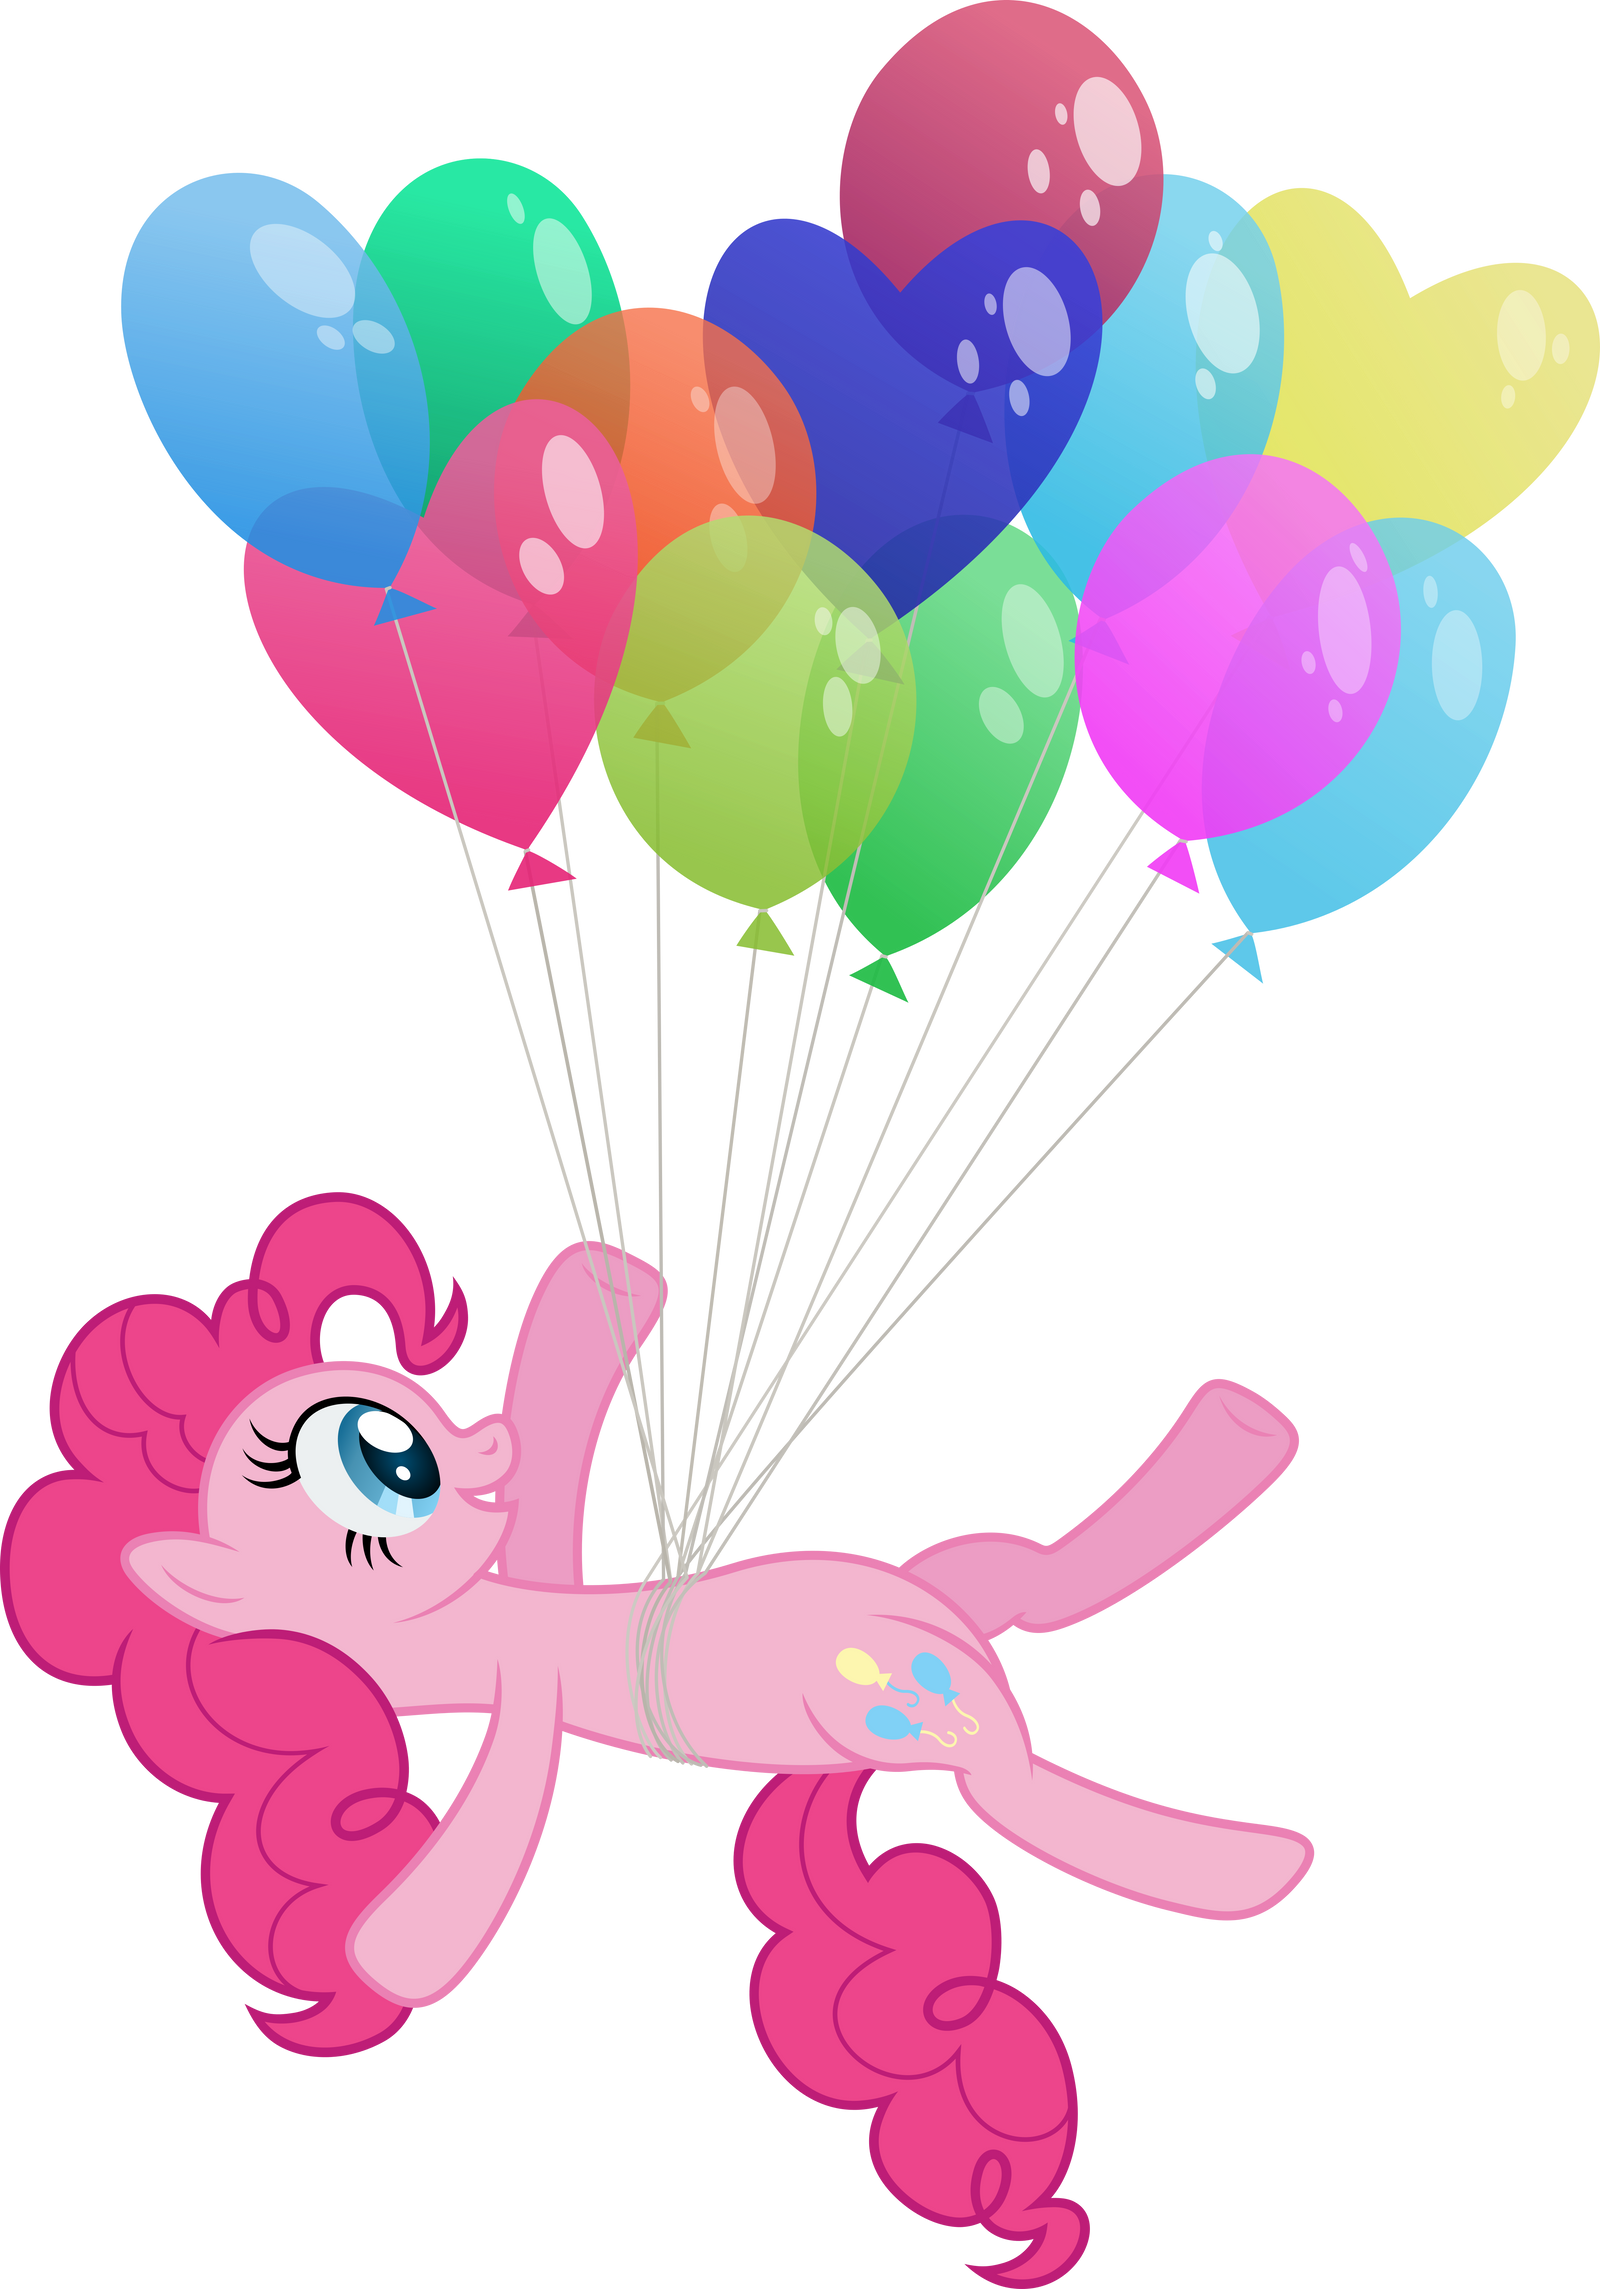 Floating Pinkie Pie by Stabzor